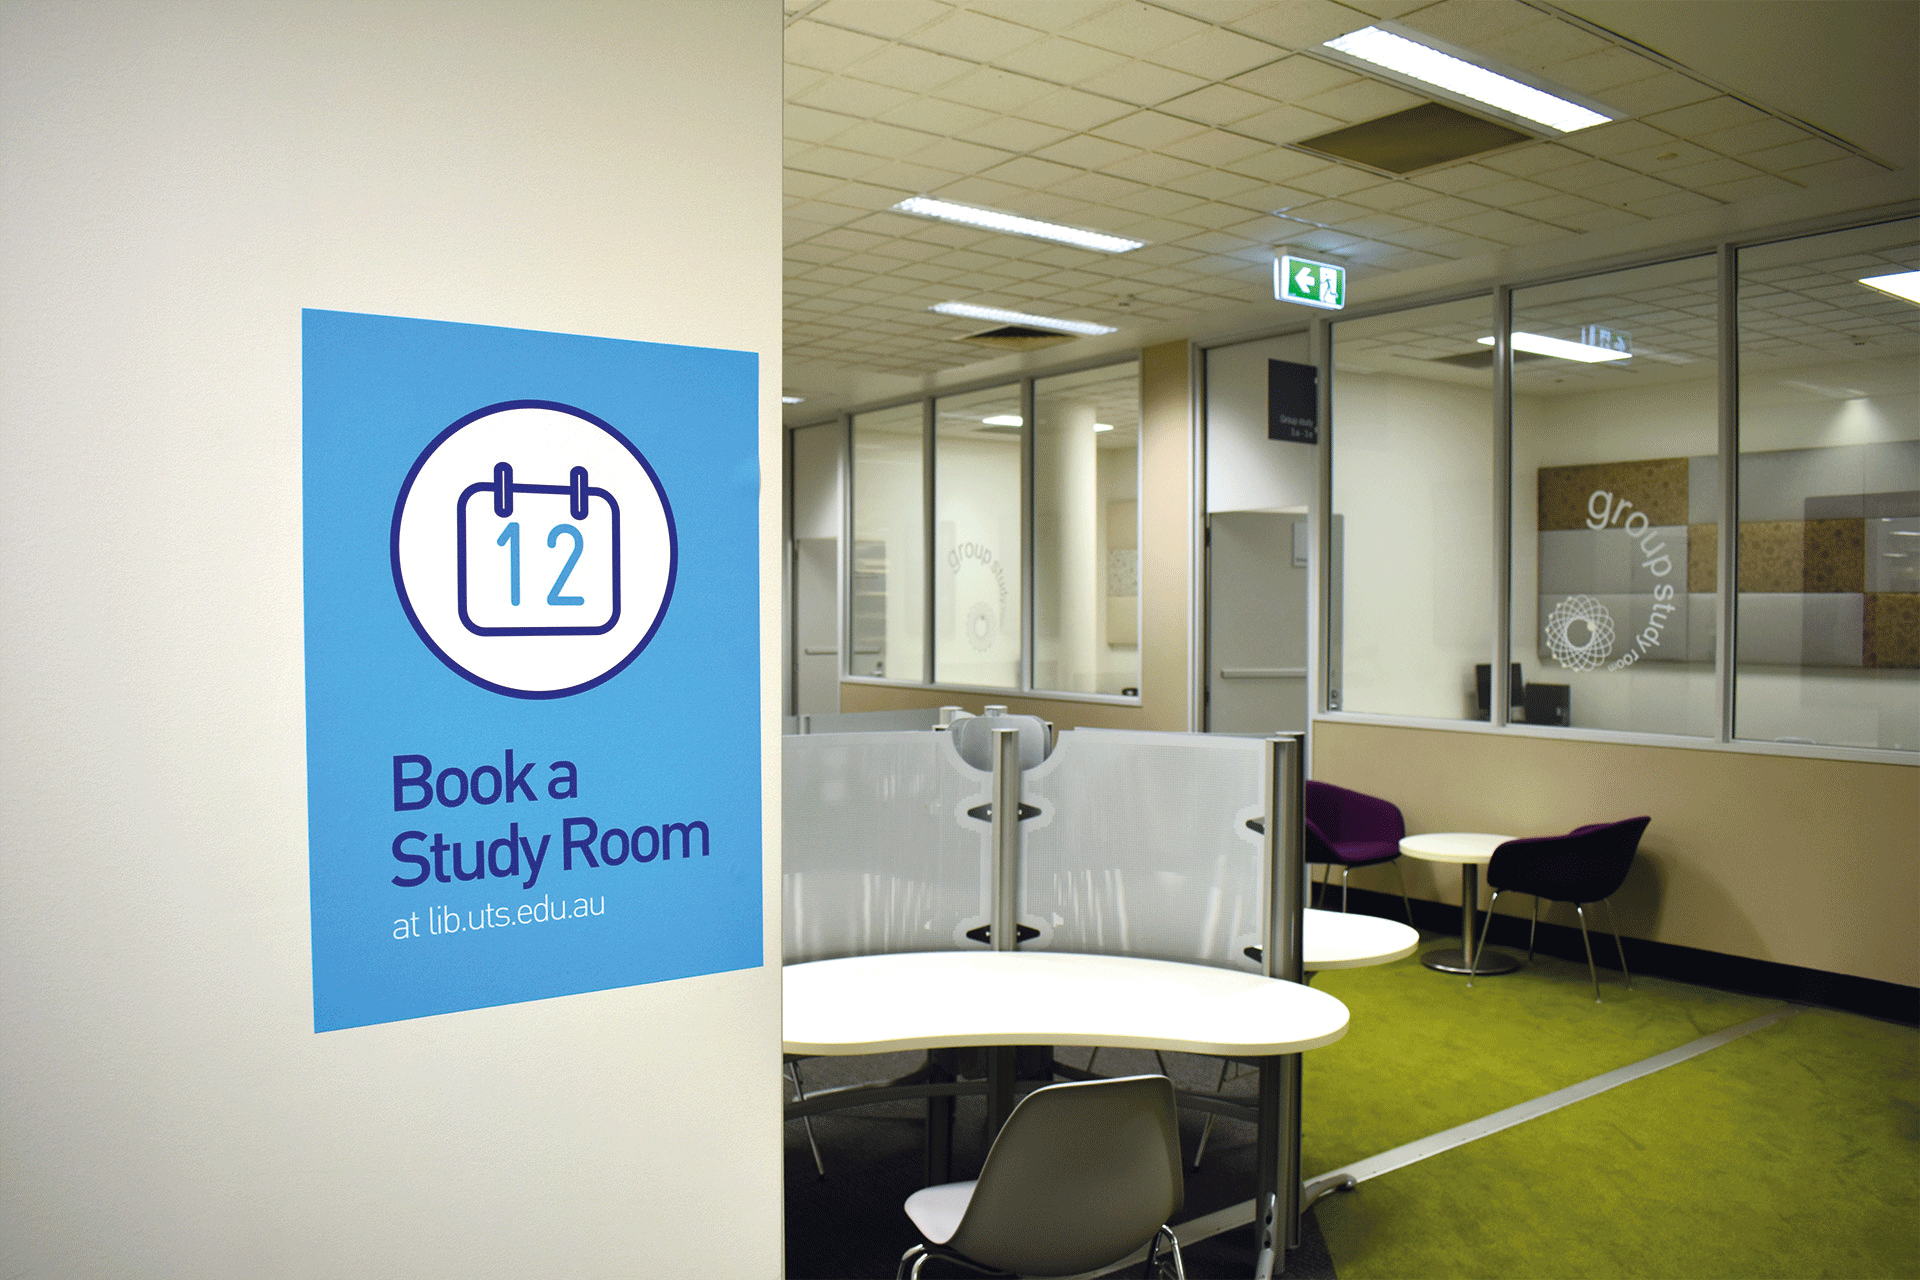 Signage by Design: A Design-Thinking Approach to Library ...